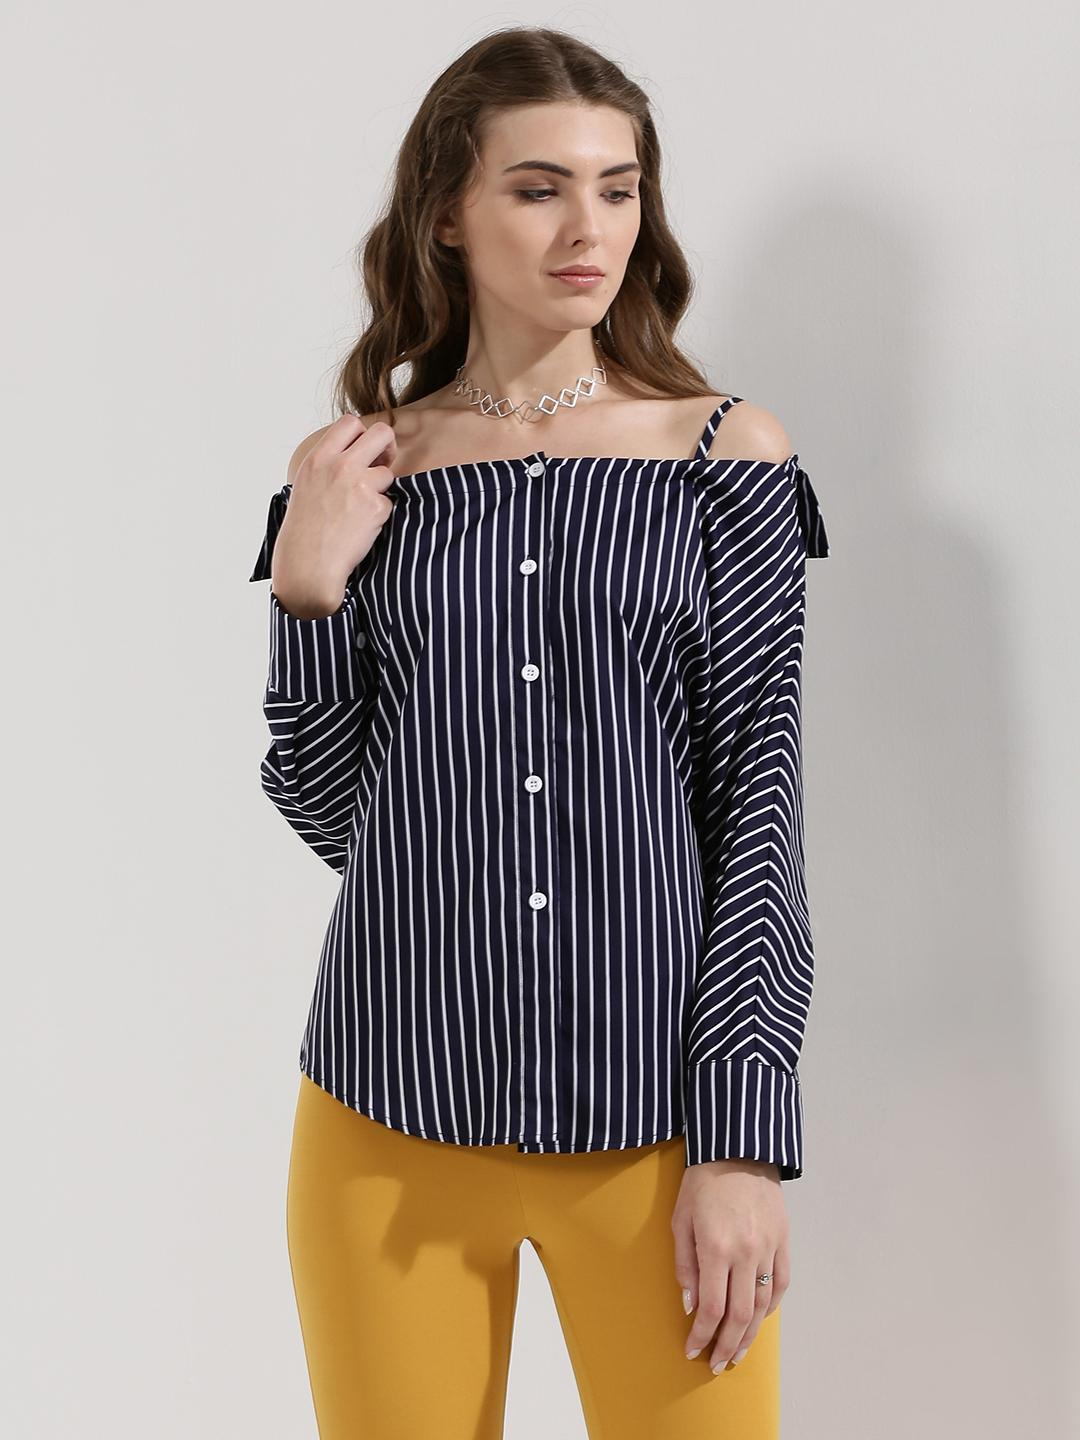 Origami Lily Navy Striped Cold Shoulder Shirt 1